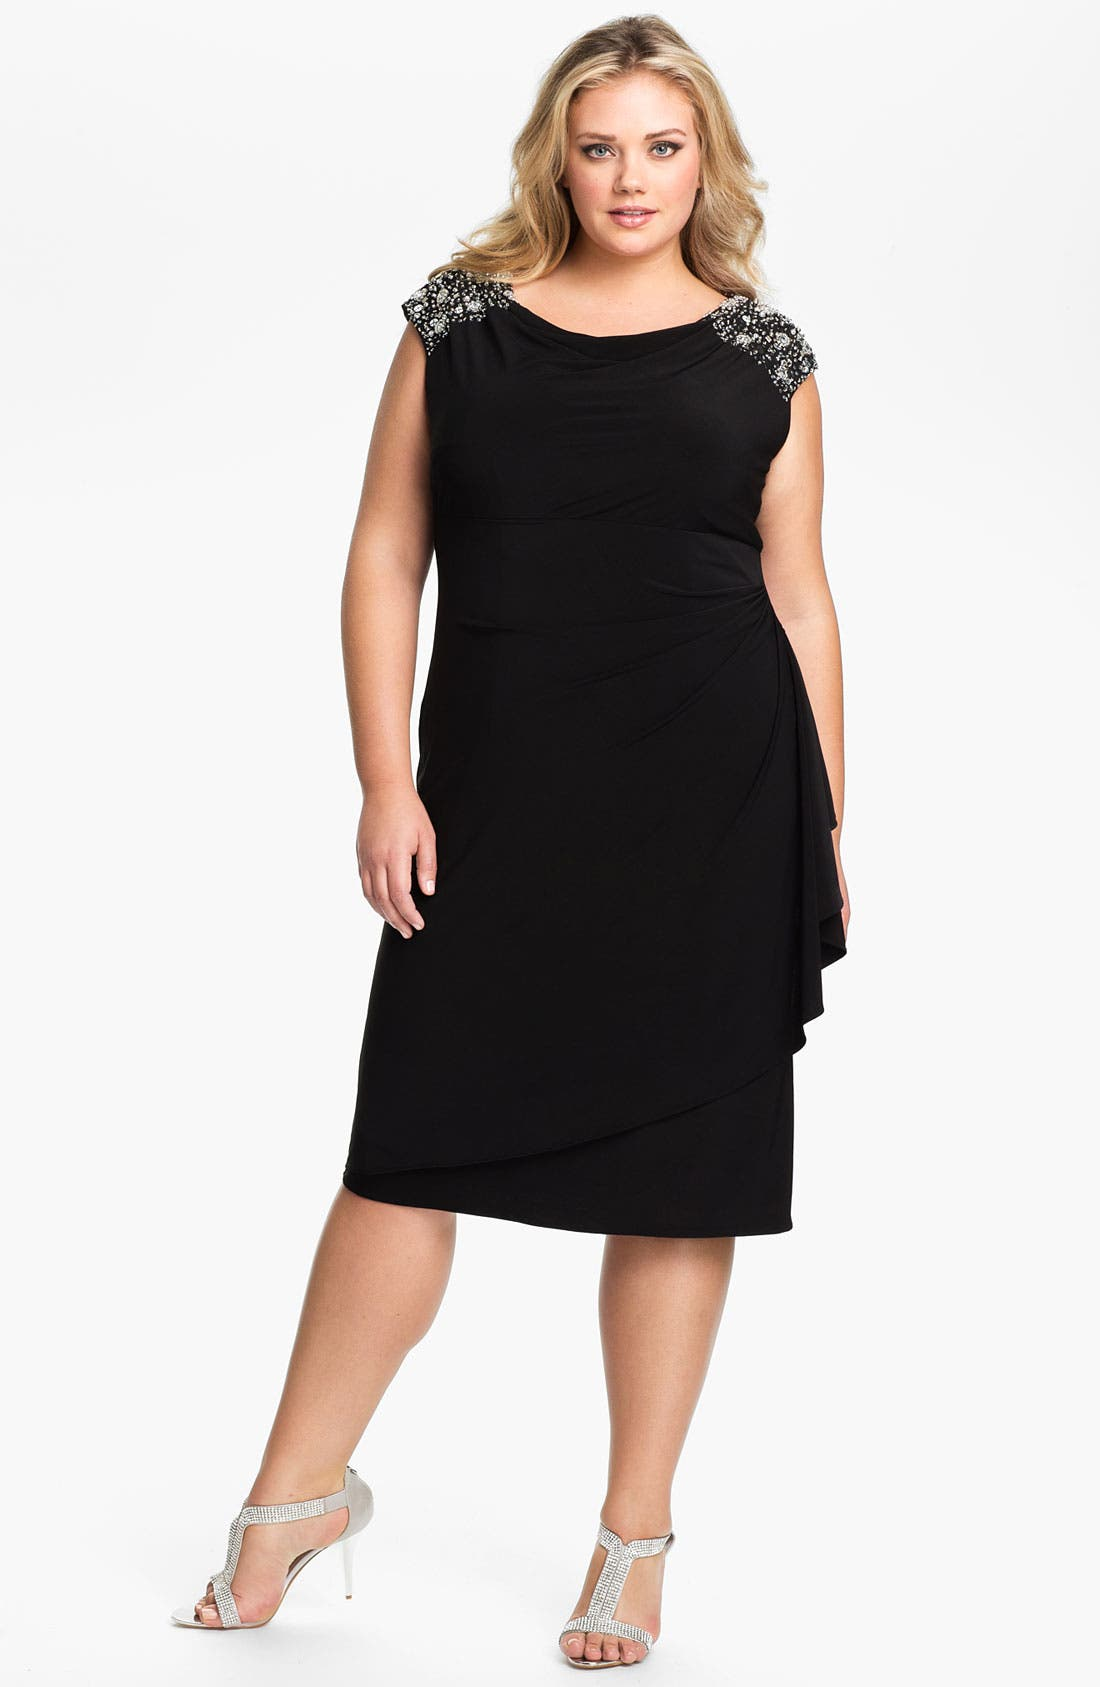 Alternate Image 1 Selected - Alex Evenings Beaded Shoulder Faux Wrap Jersey Dress (Plus Size)